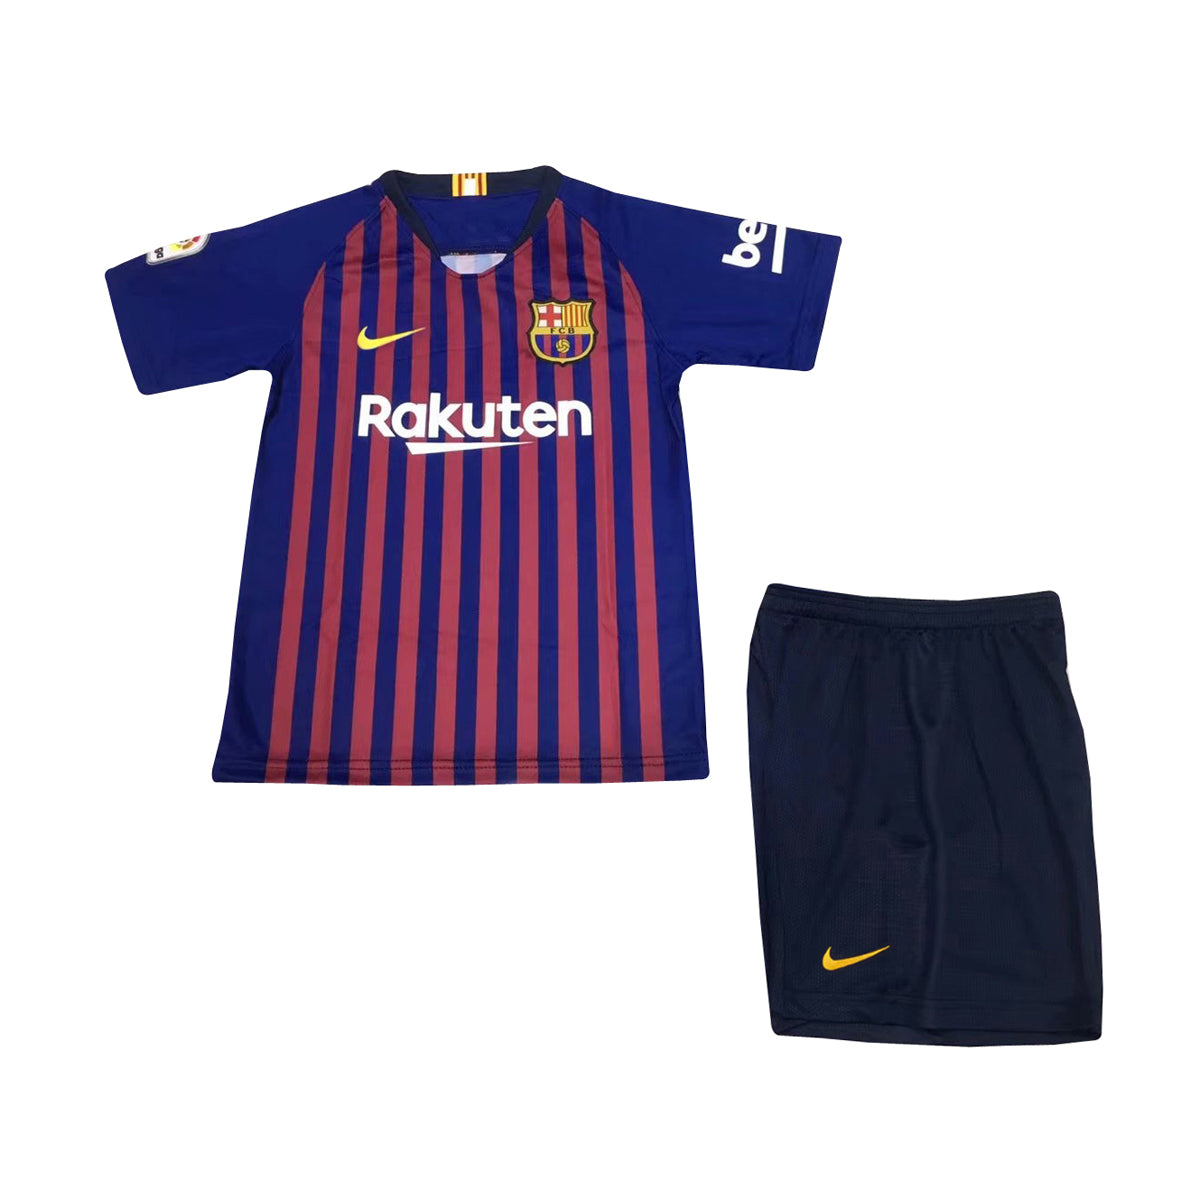 0dcdbe3ff Barcelona Home kids 2018 19 kit - uaesportstore